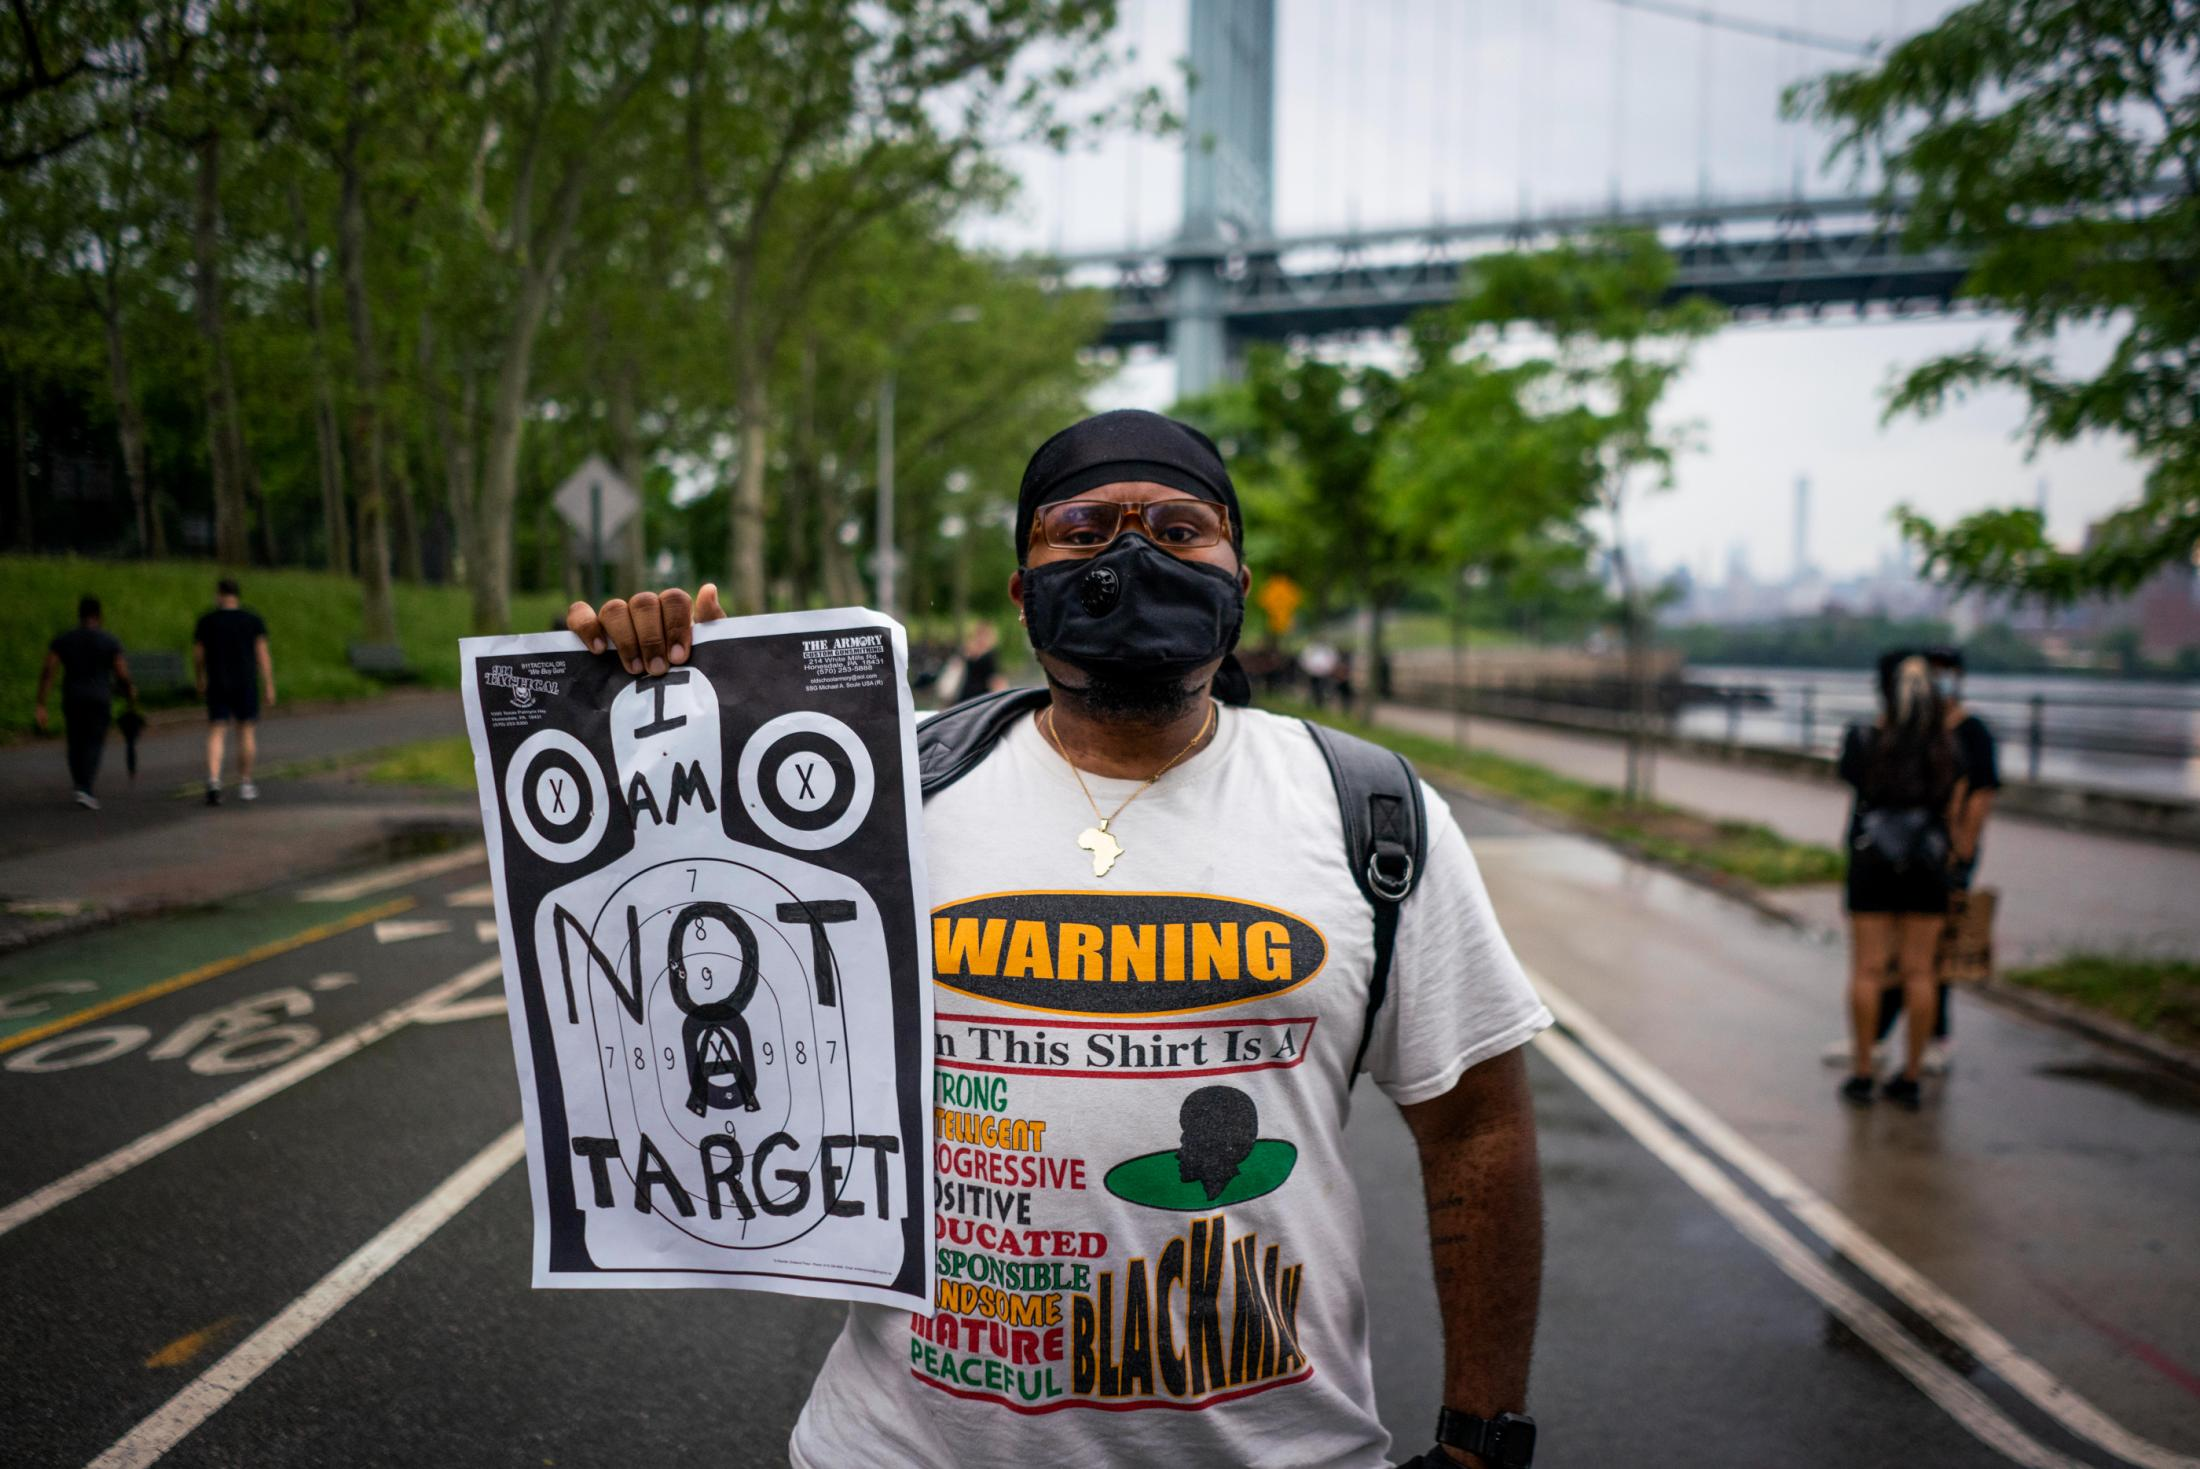 Matt M. holds up a shooting range target while attending a vigil for Breonna Taylor at Astoria Park in Queens.